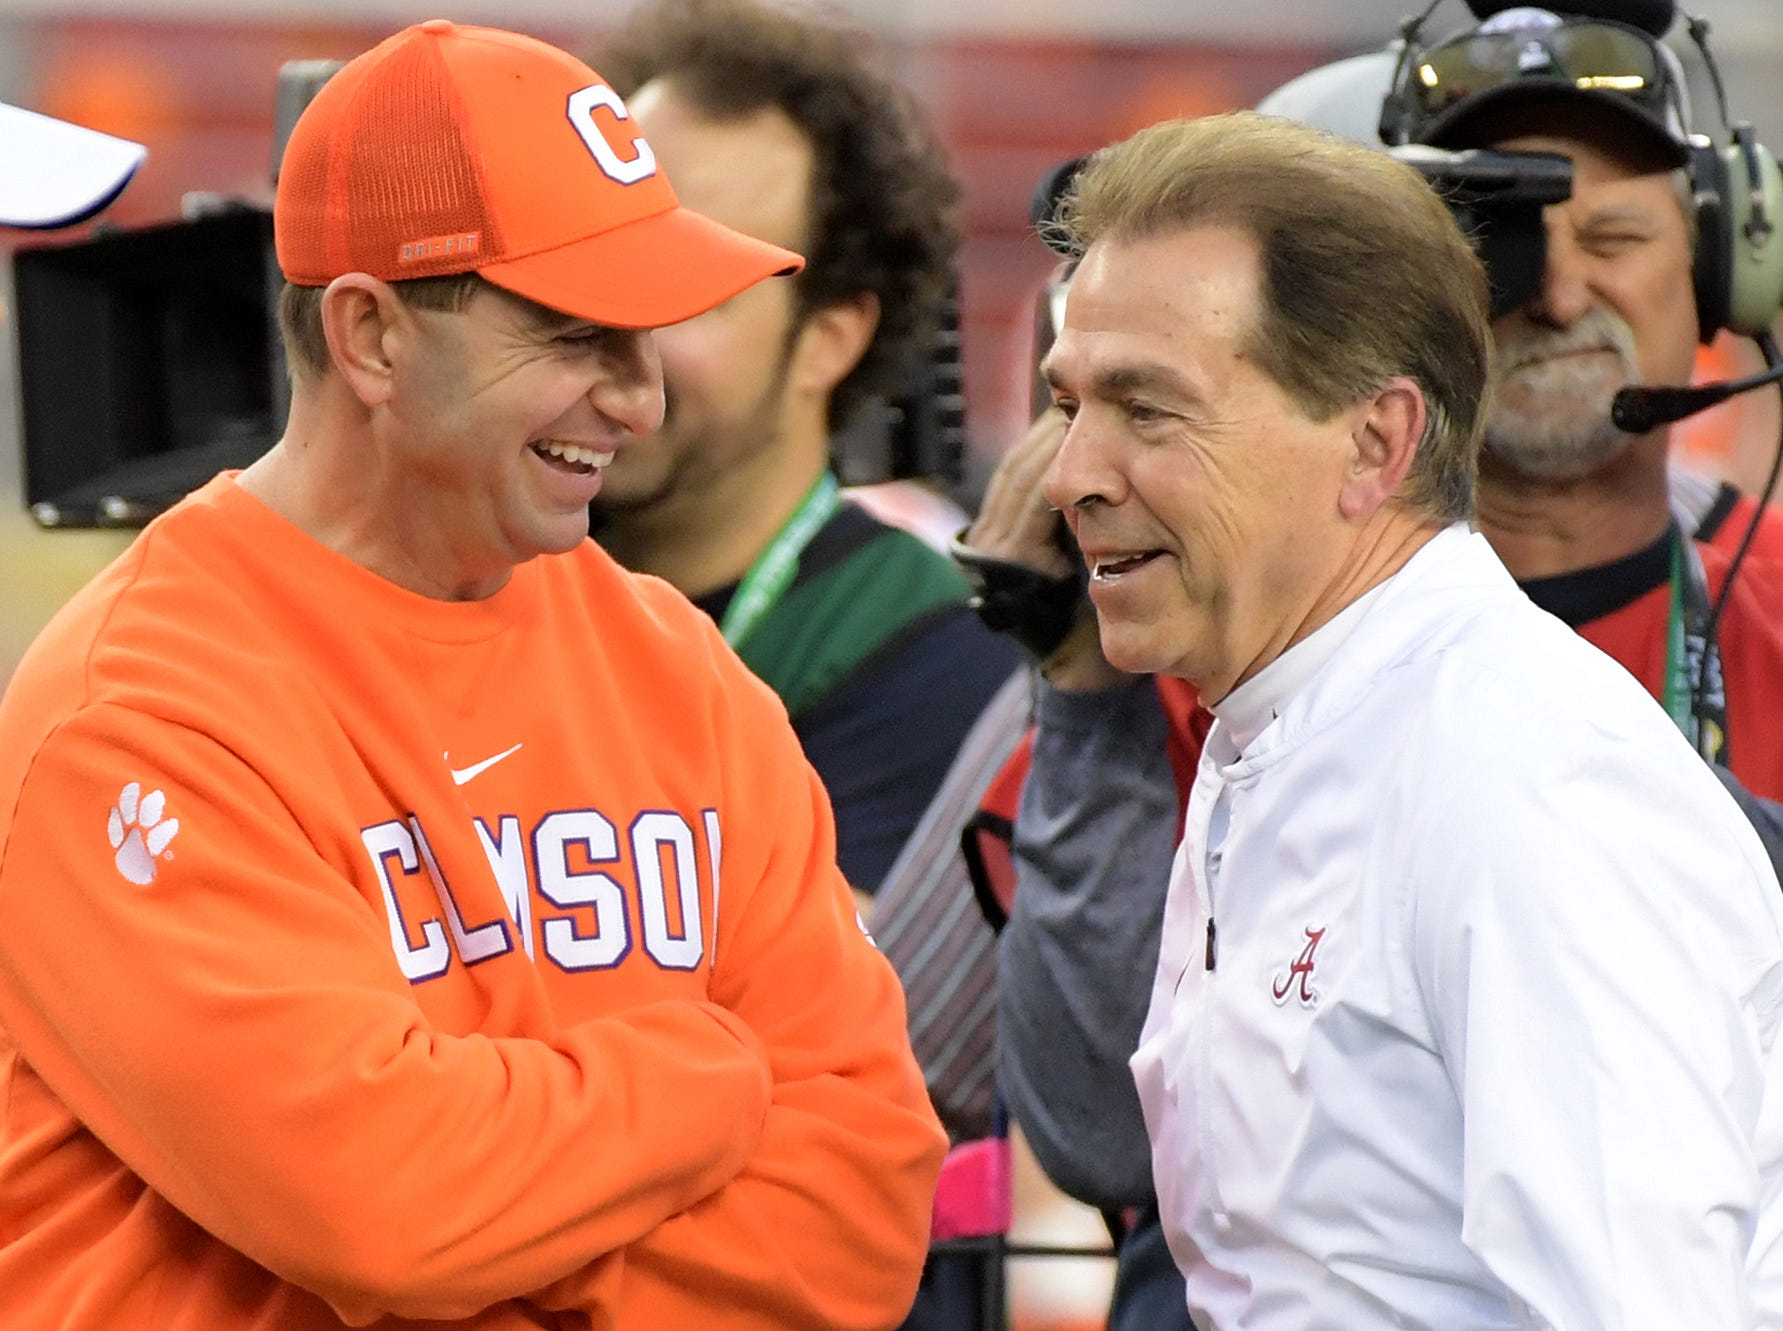 Dabo Swinney and Nick Saban share a laugh before the game.